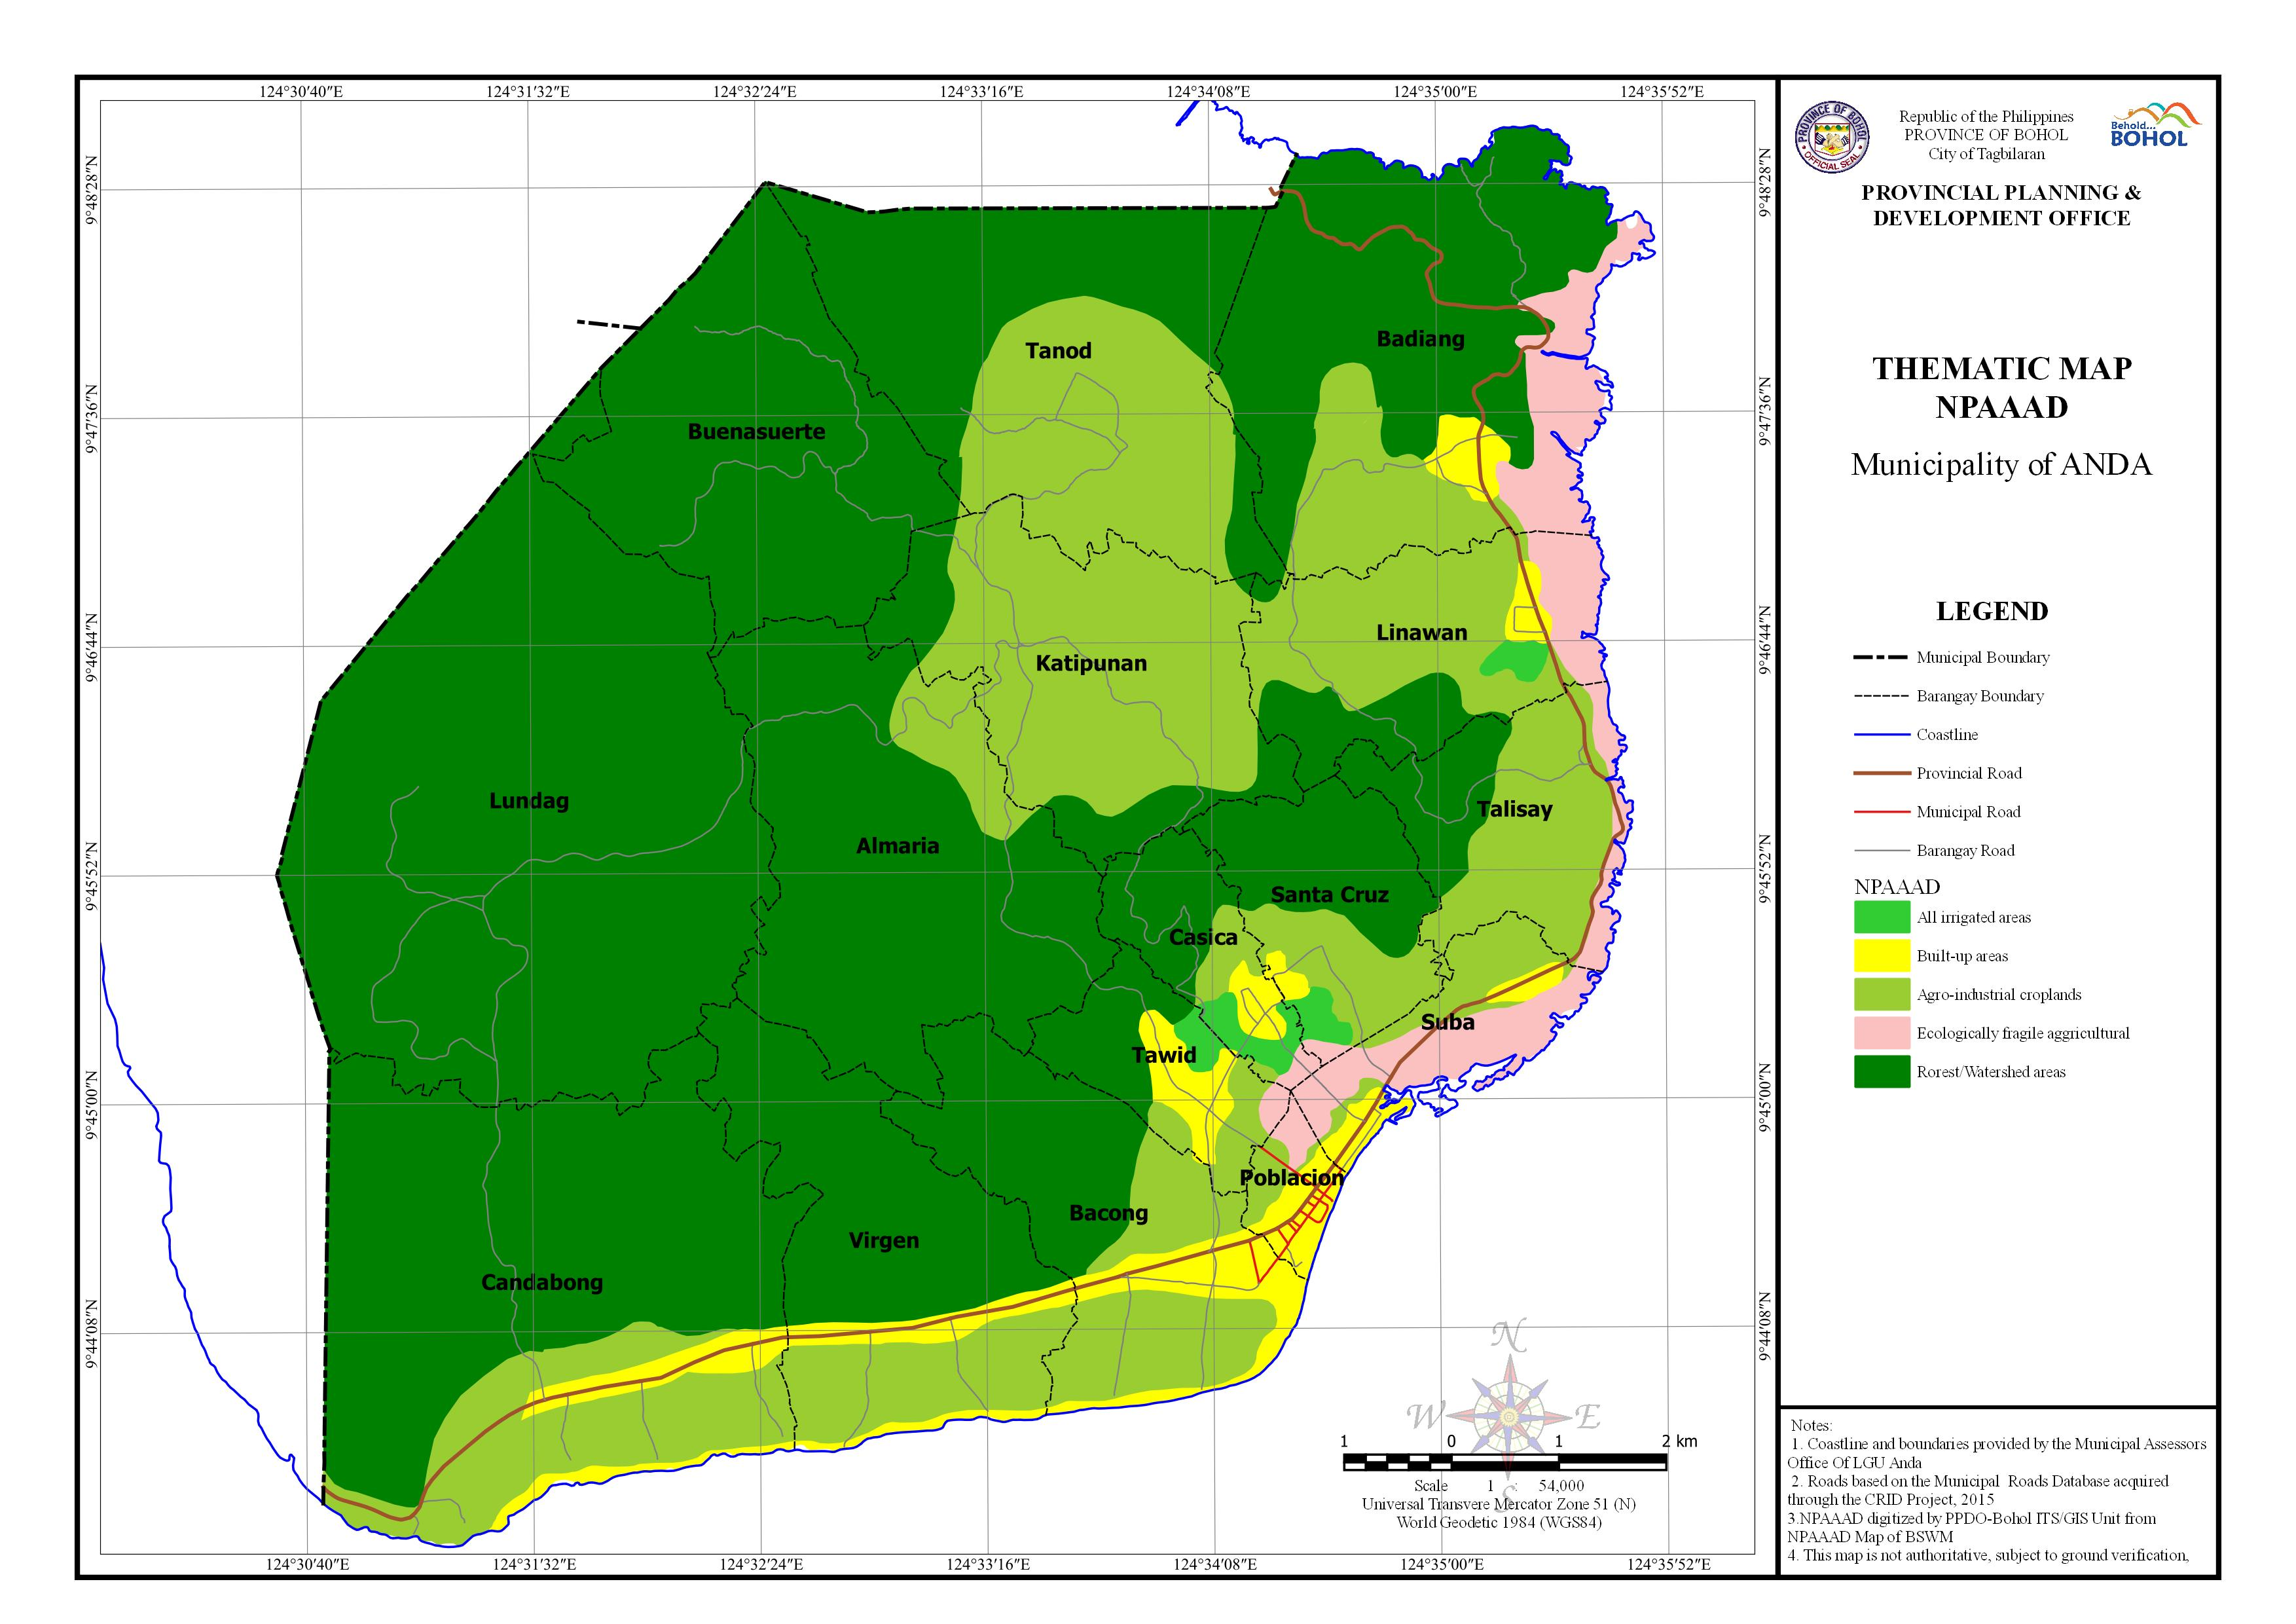 Network of Protected Areas for Agriculture and Agro-Industrial Development (NPAAAD)